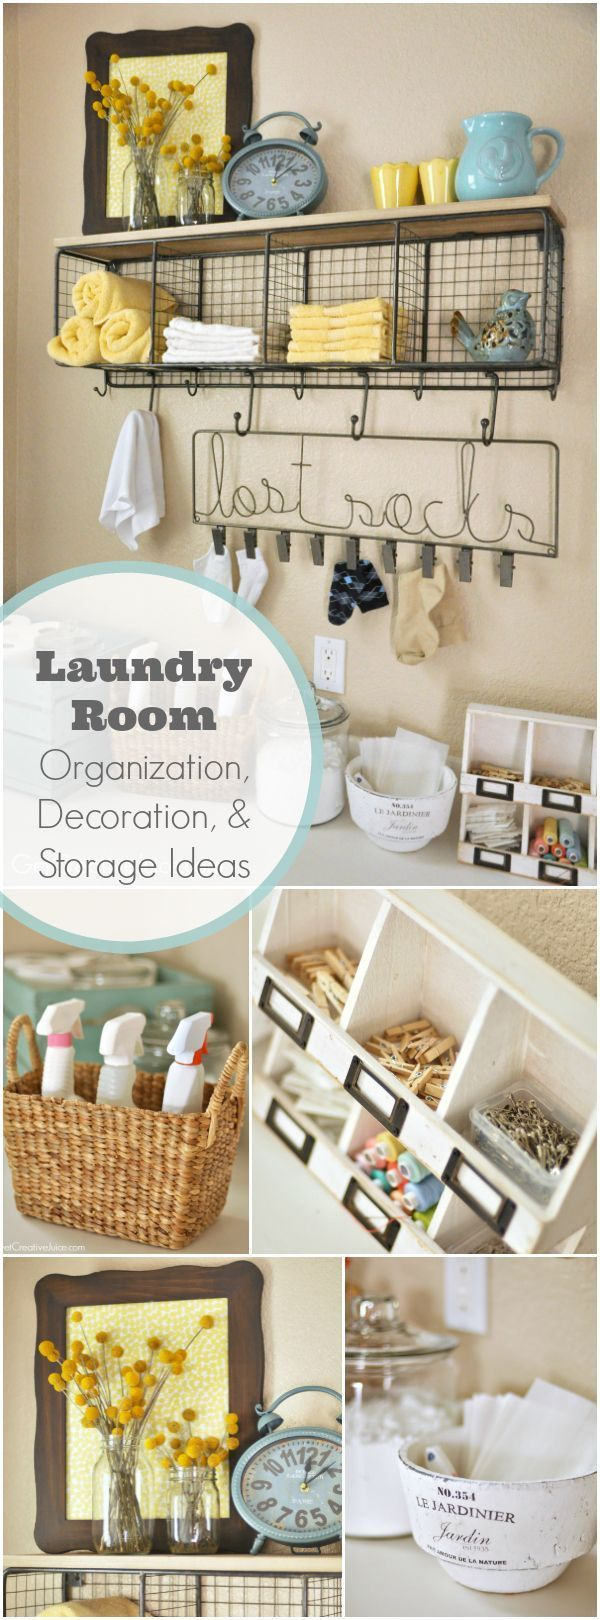 Laundry Room Organization and Storage Ideas - Super cute and creative ideas to spruce up your laundry space!